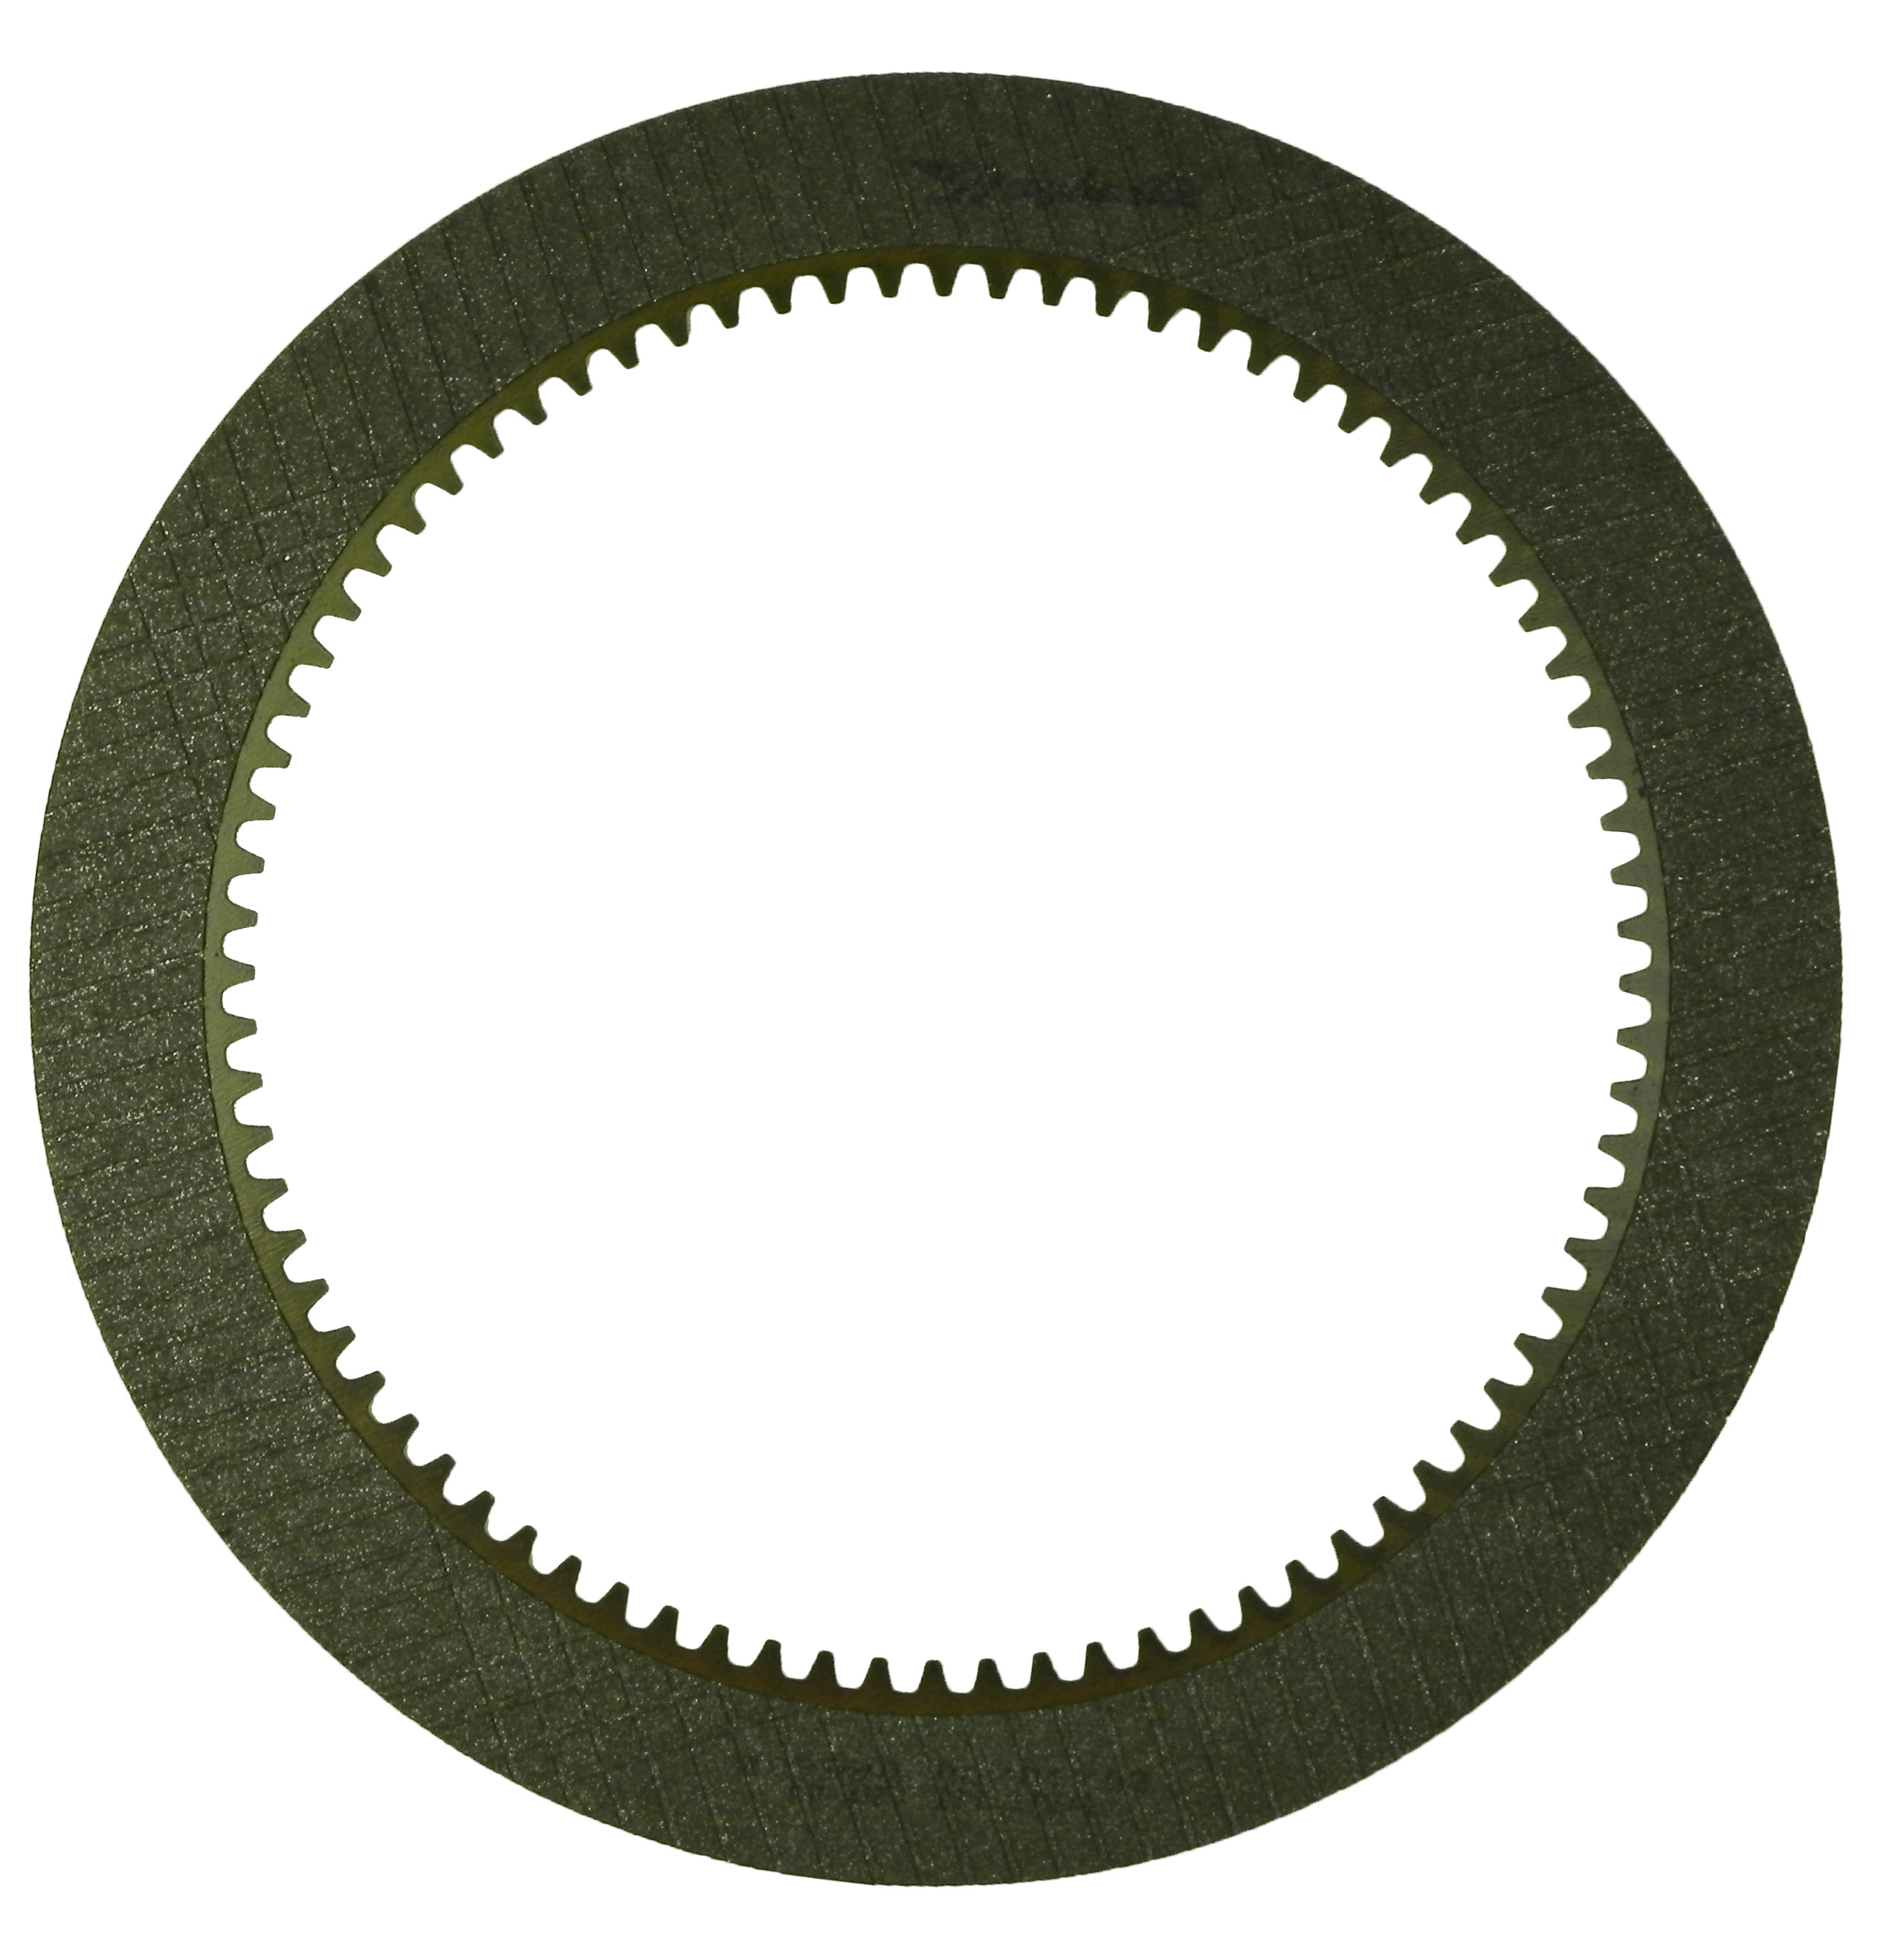 R809990 | 1970-ON Friction Clutch Plate Graphitic 2nd, 3rd Graphitic